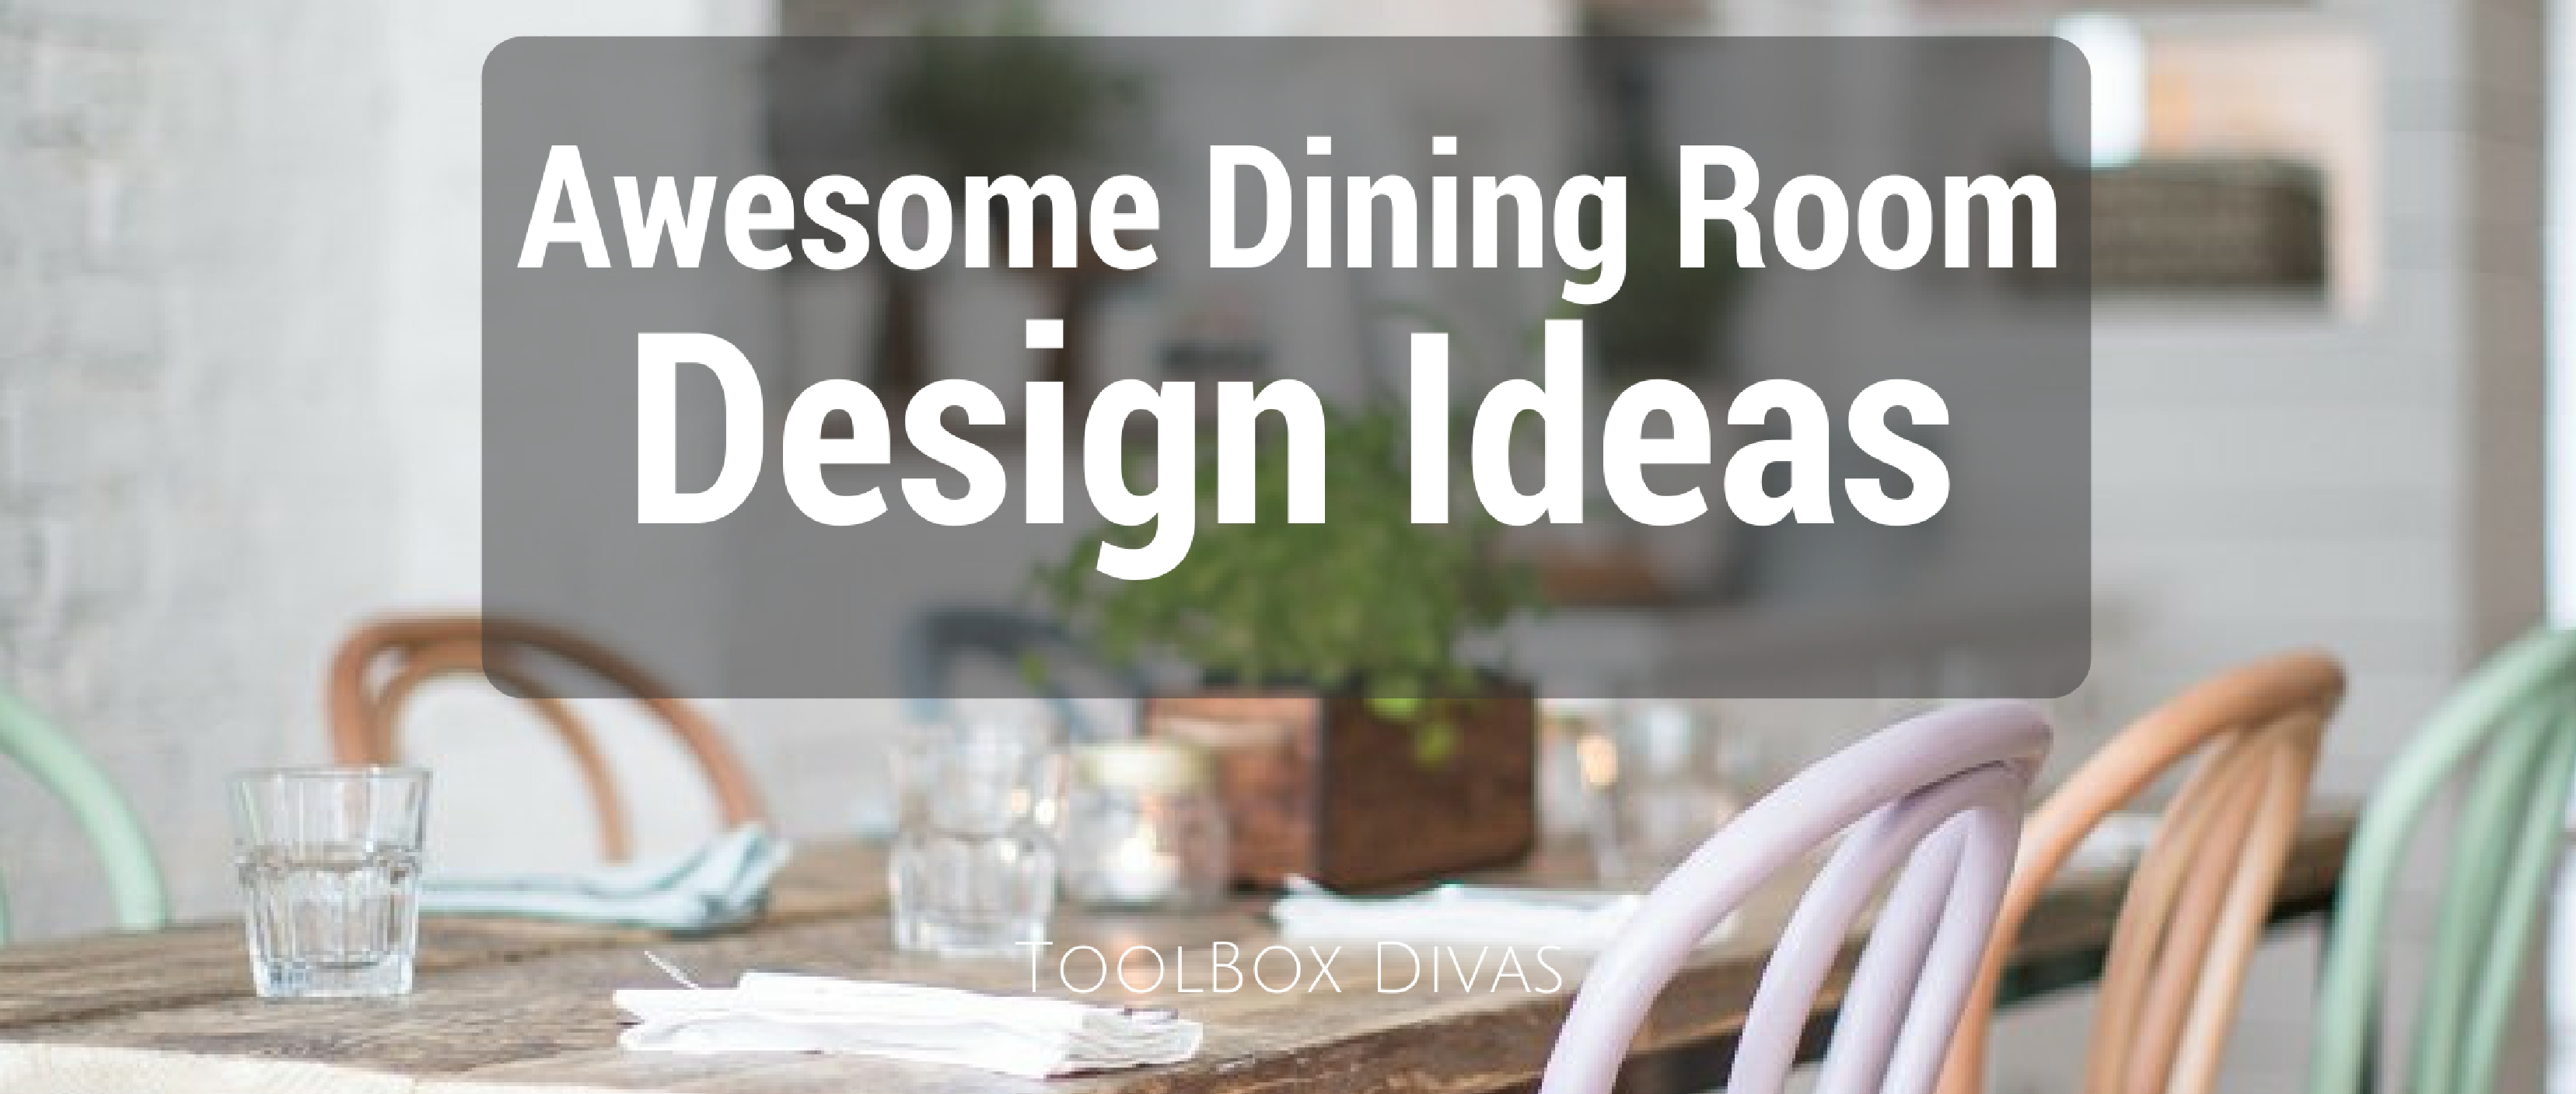 Awesome dining room interior design ideas toolbox divas for Room decor youtube channel